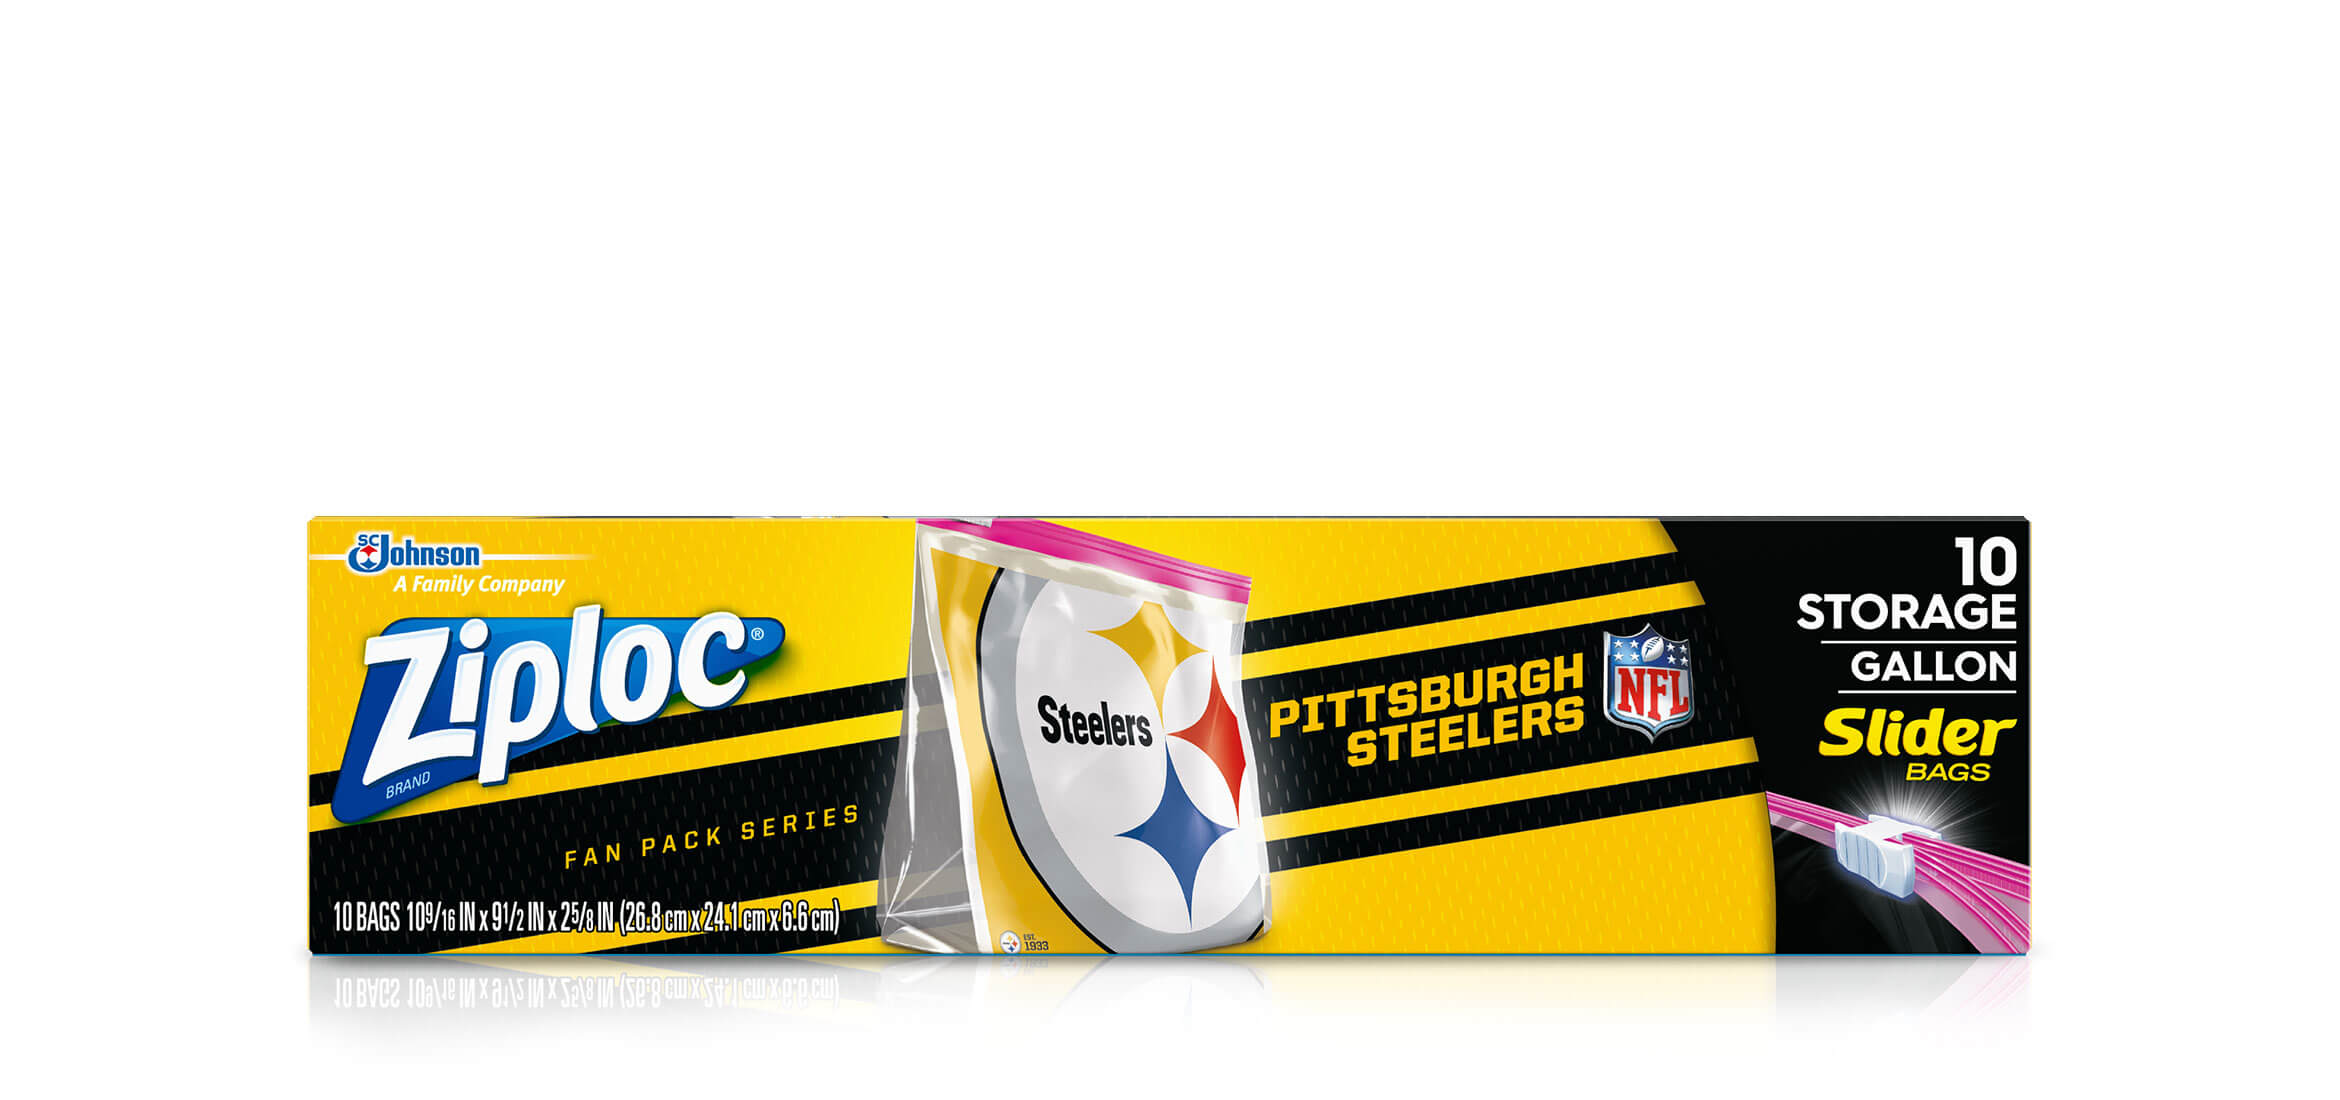 Pittsburgh-Steelers-Slider-Storage-Gallon-Hero-2X